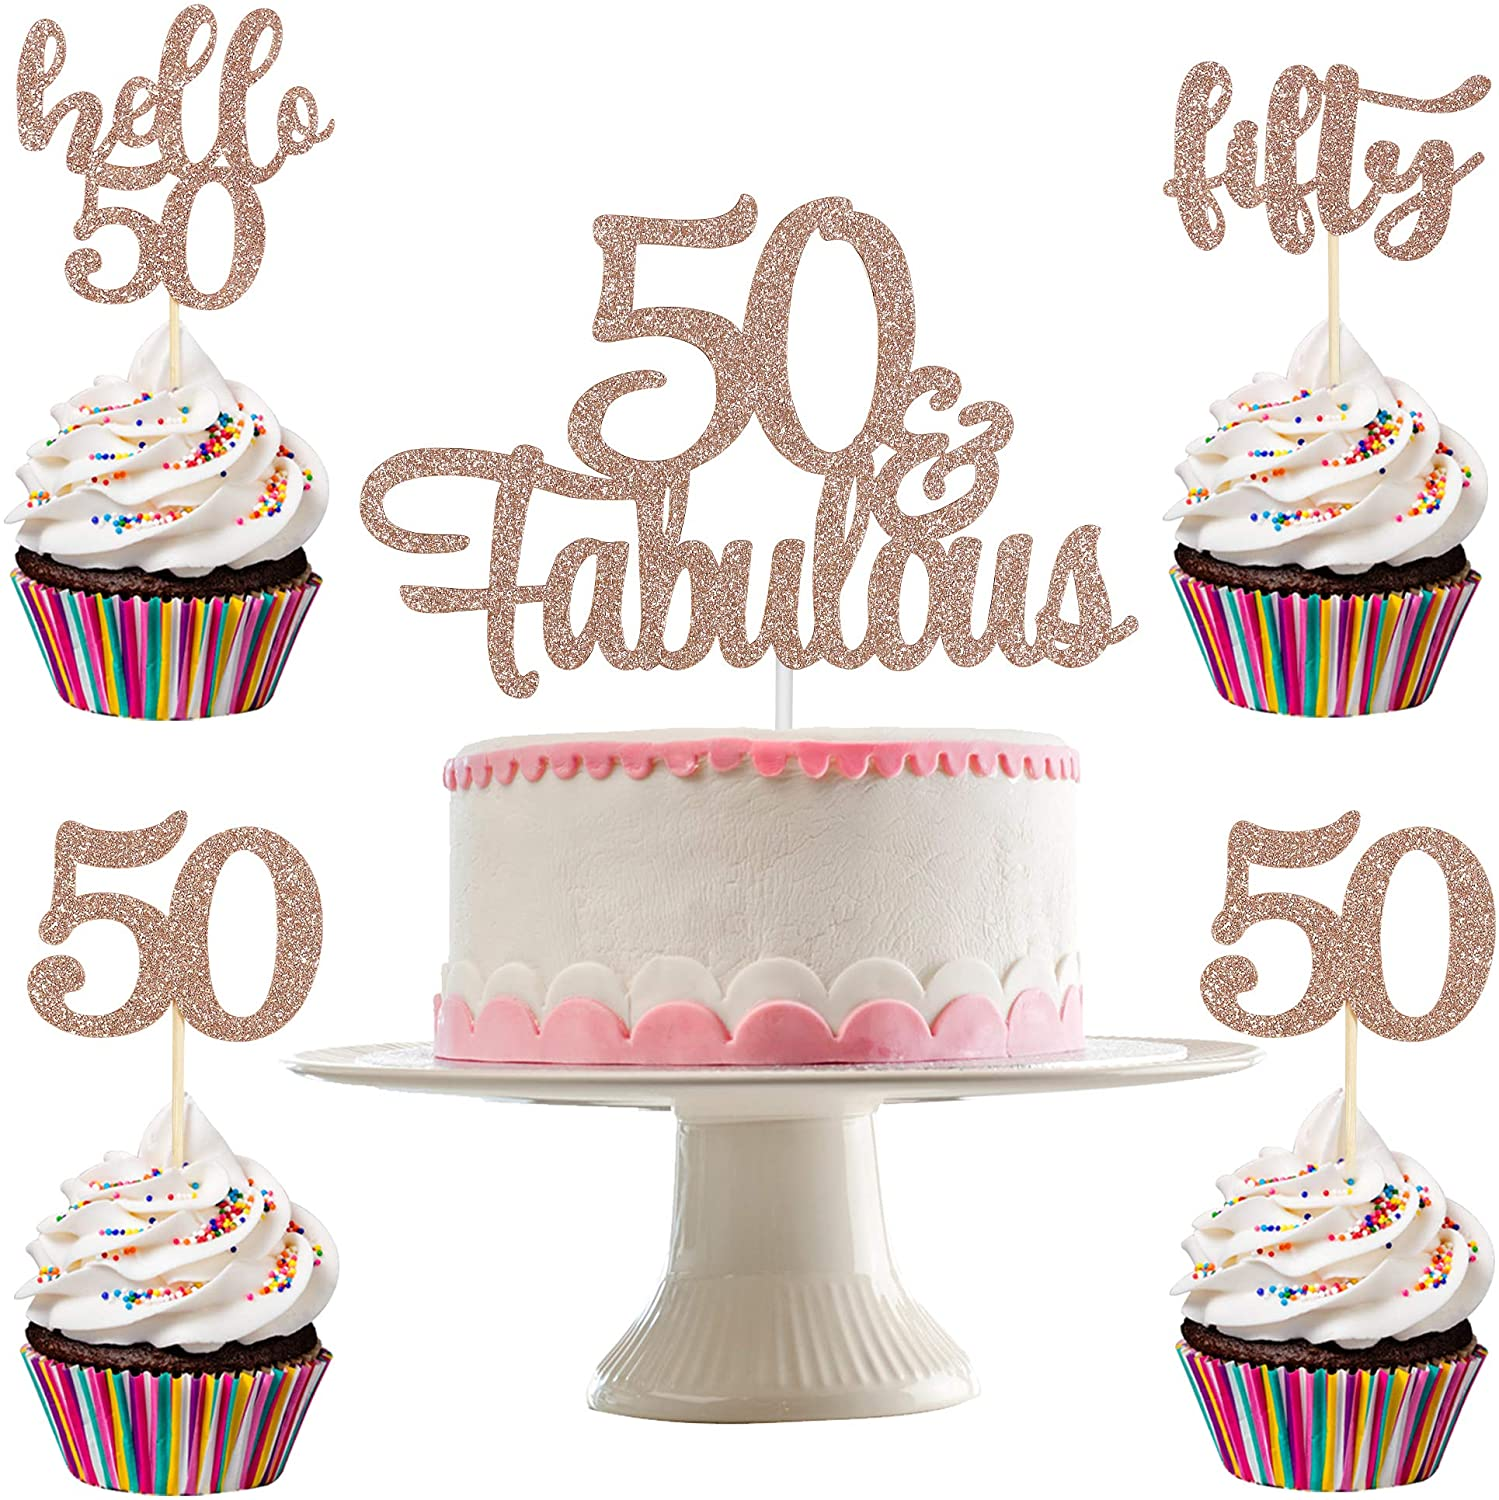 Rose Gold Glittery 50 & Fabulous Cake Topper and 24Pcs Rose Gold Glittery Fifty Hello 50 50 Cupcake Toppers- 50th Birthday Party Decorations,50 Fabulous Decorations,50th Birthday Cake Topper Decor,Anniversary Decor,50 Rose Gold Toppers